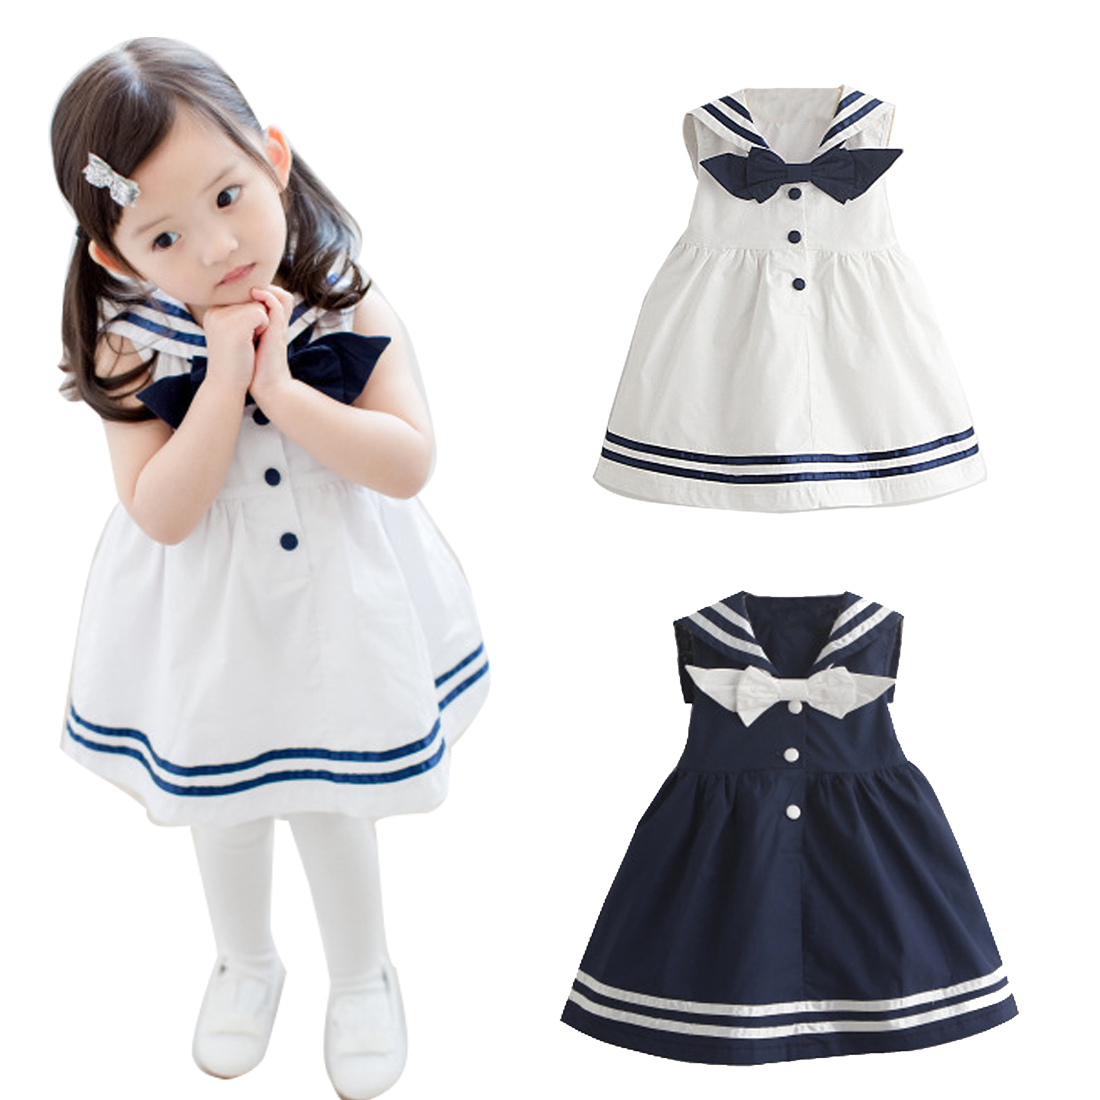 Gaorui Girl sleeveless kid Dress Baby Princess 2017 New Navy Sailor Uniforms Casual Style Girls Dress For Age 3-8 Years